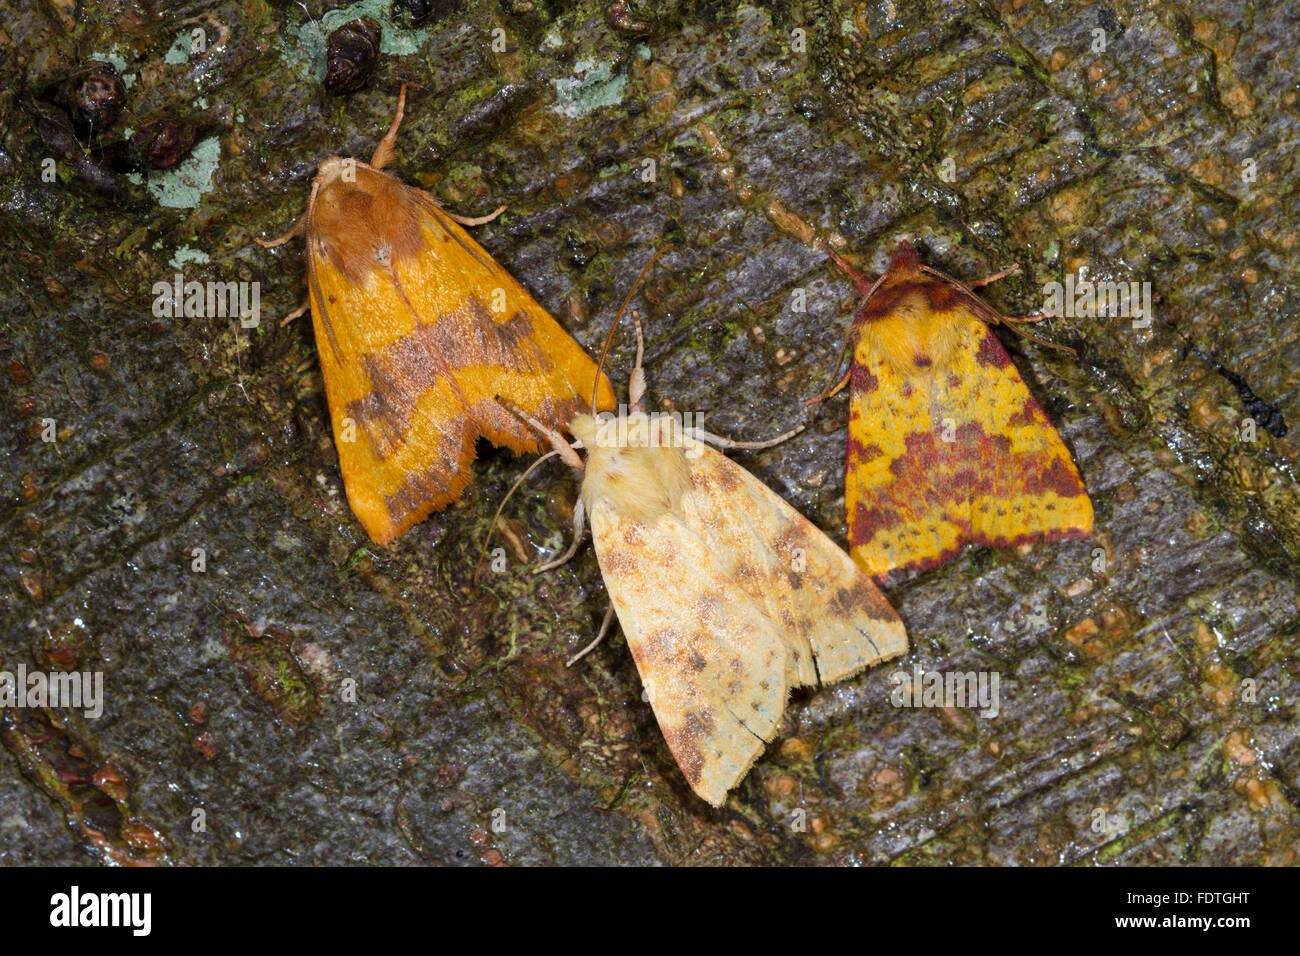 Autumn moths: Centre-barred Sallow, The Sallow, and Pink-barred Sallow moths. - Stock Image